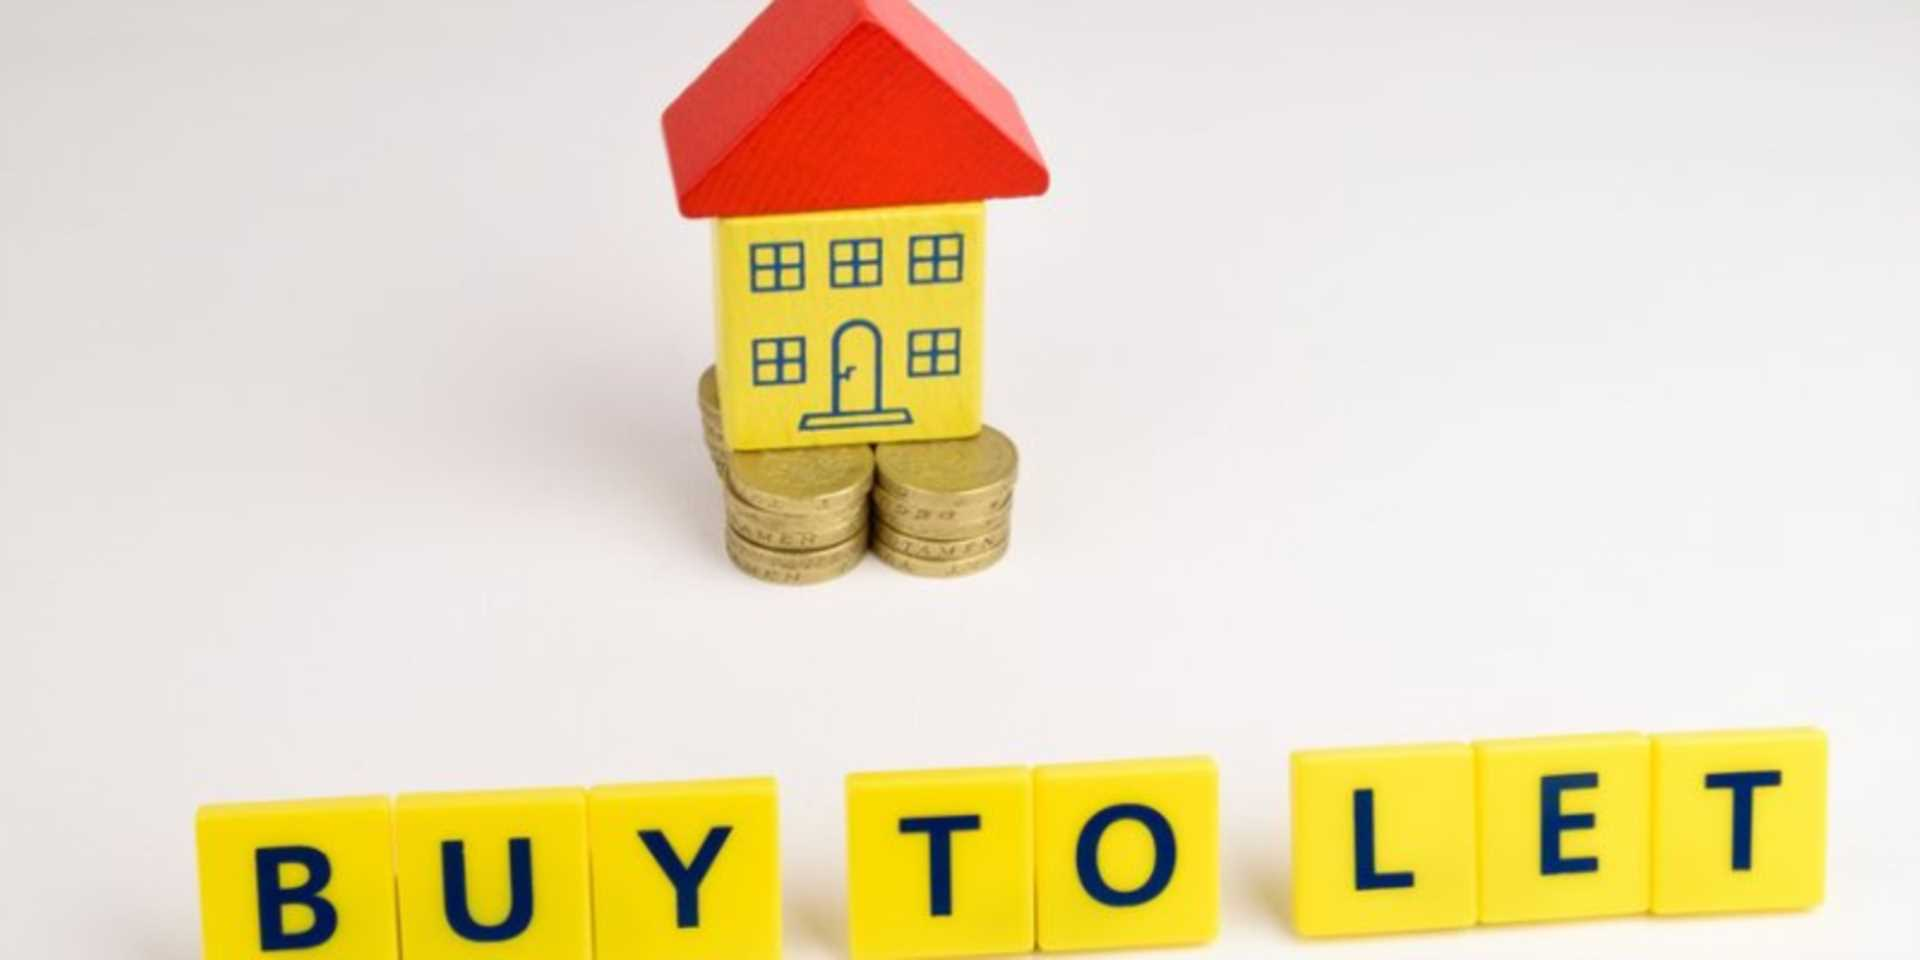 Investing in buy-to-let properties as a new investor in 2019